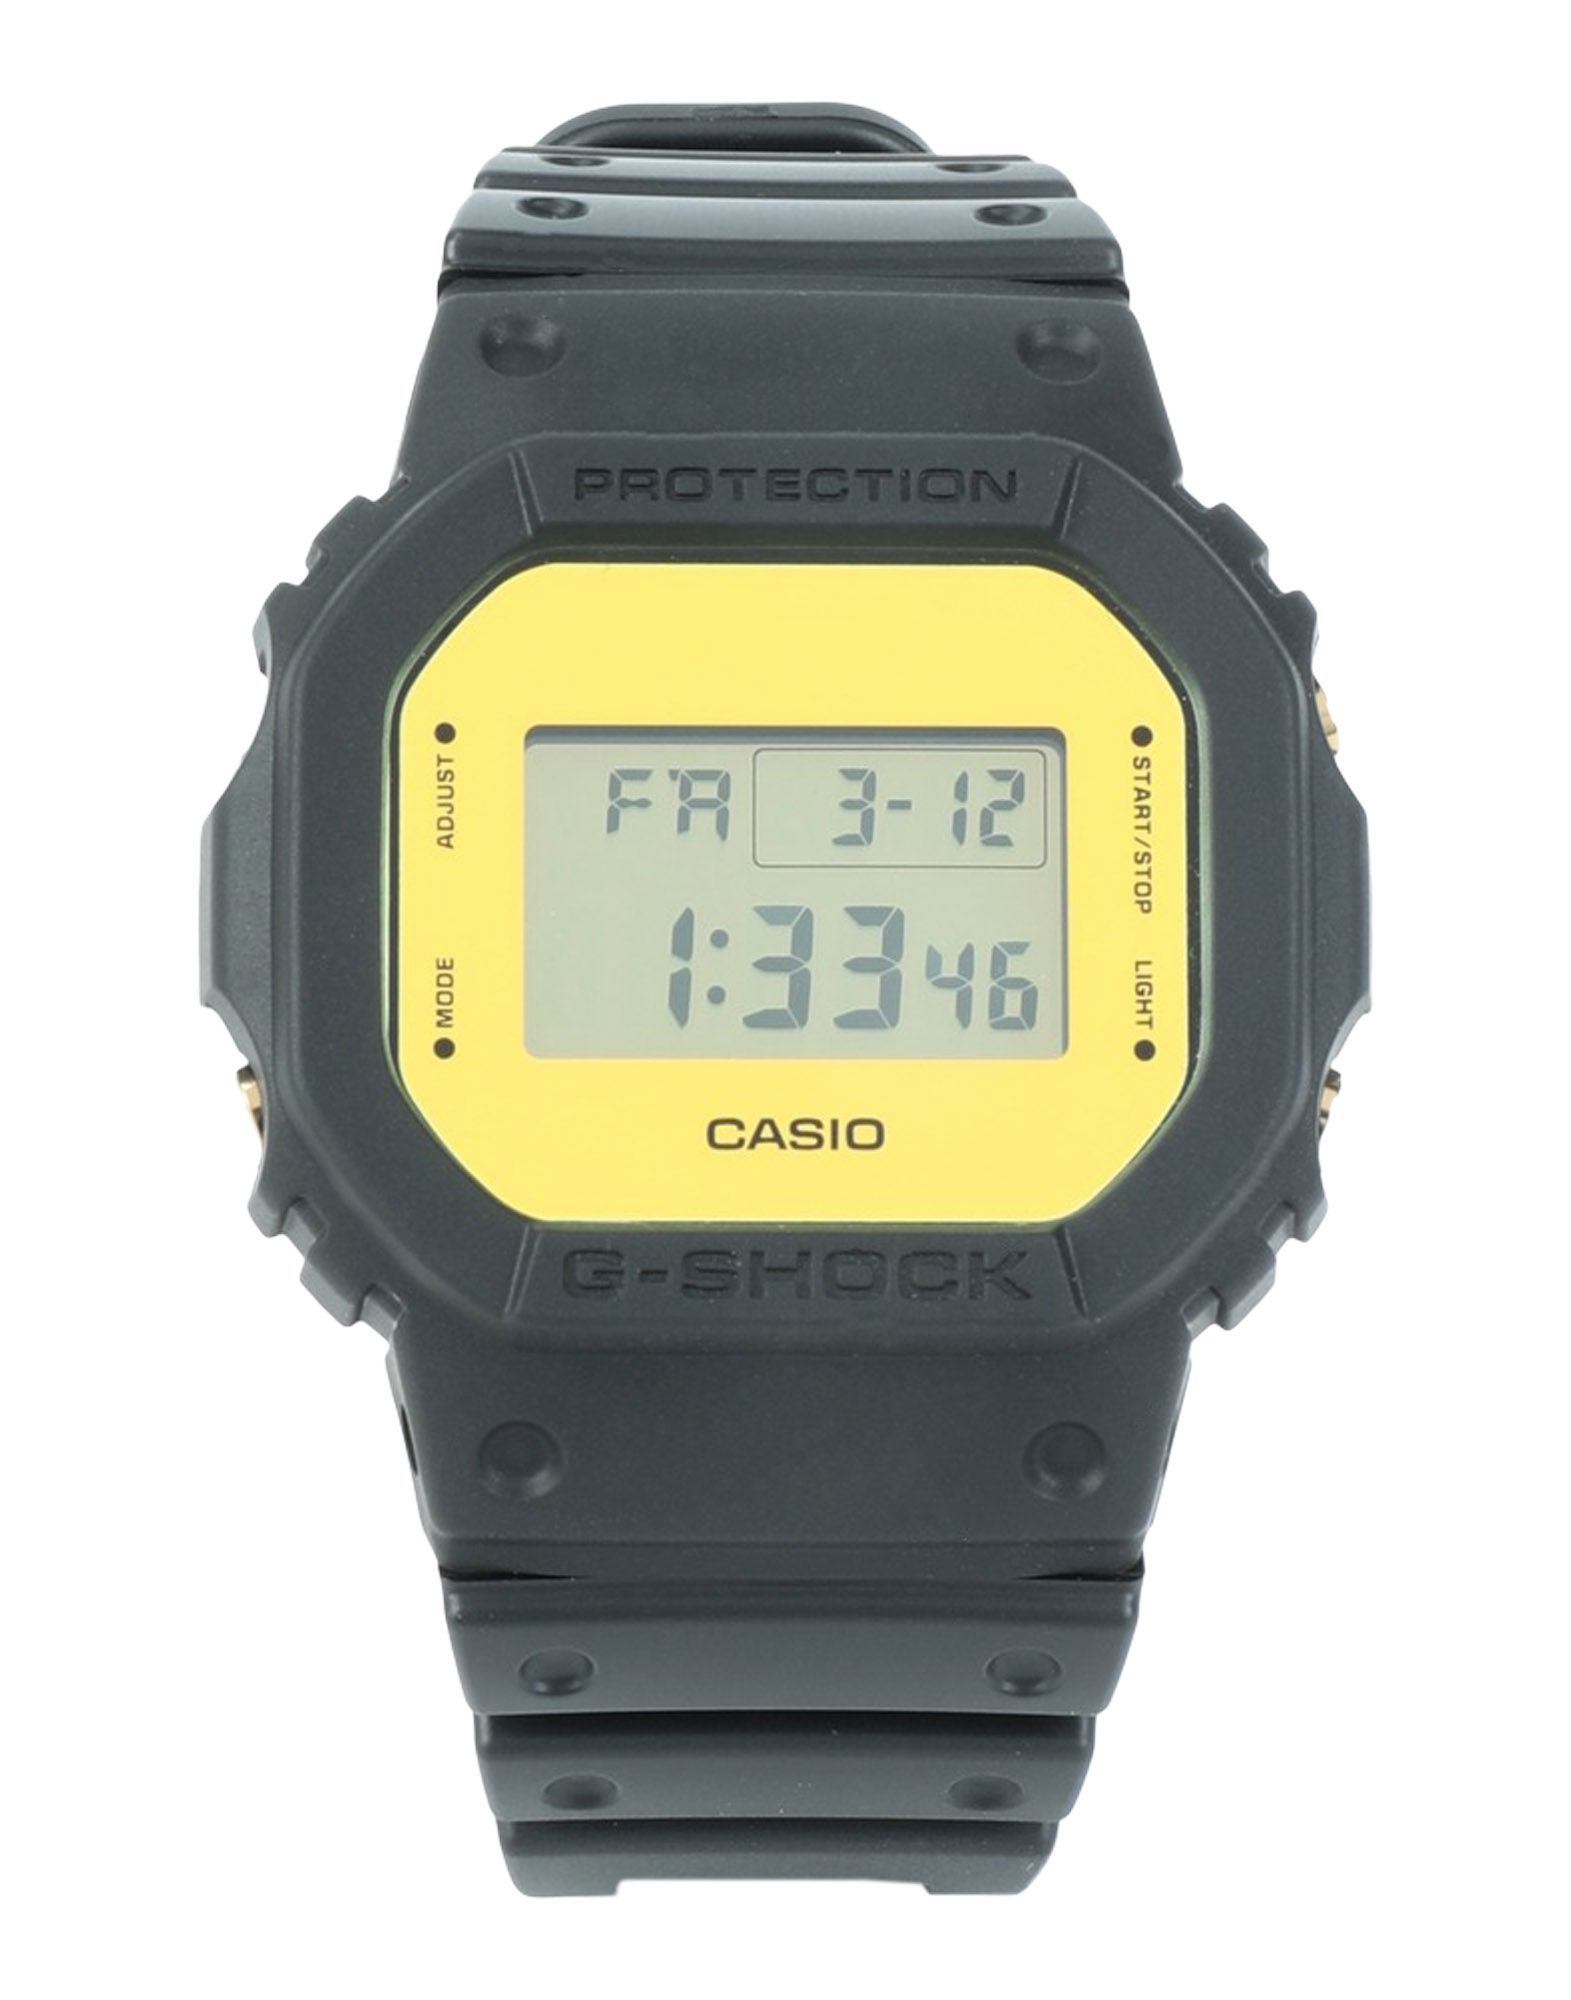 CASIO G-SHOCK Наручные часы casio g shock на авито